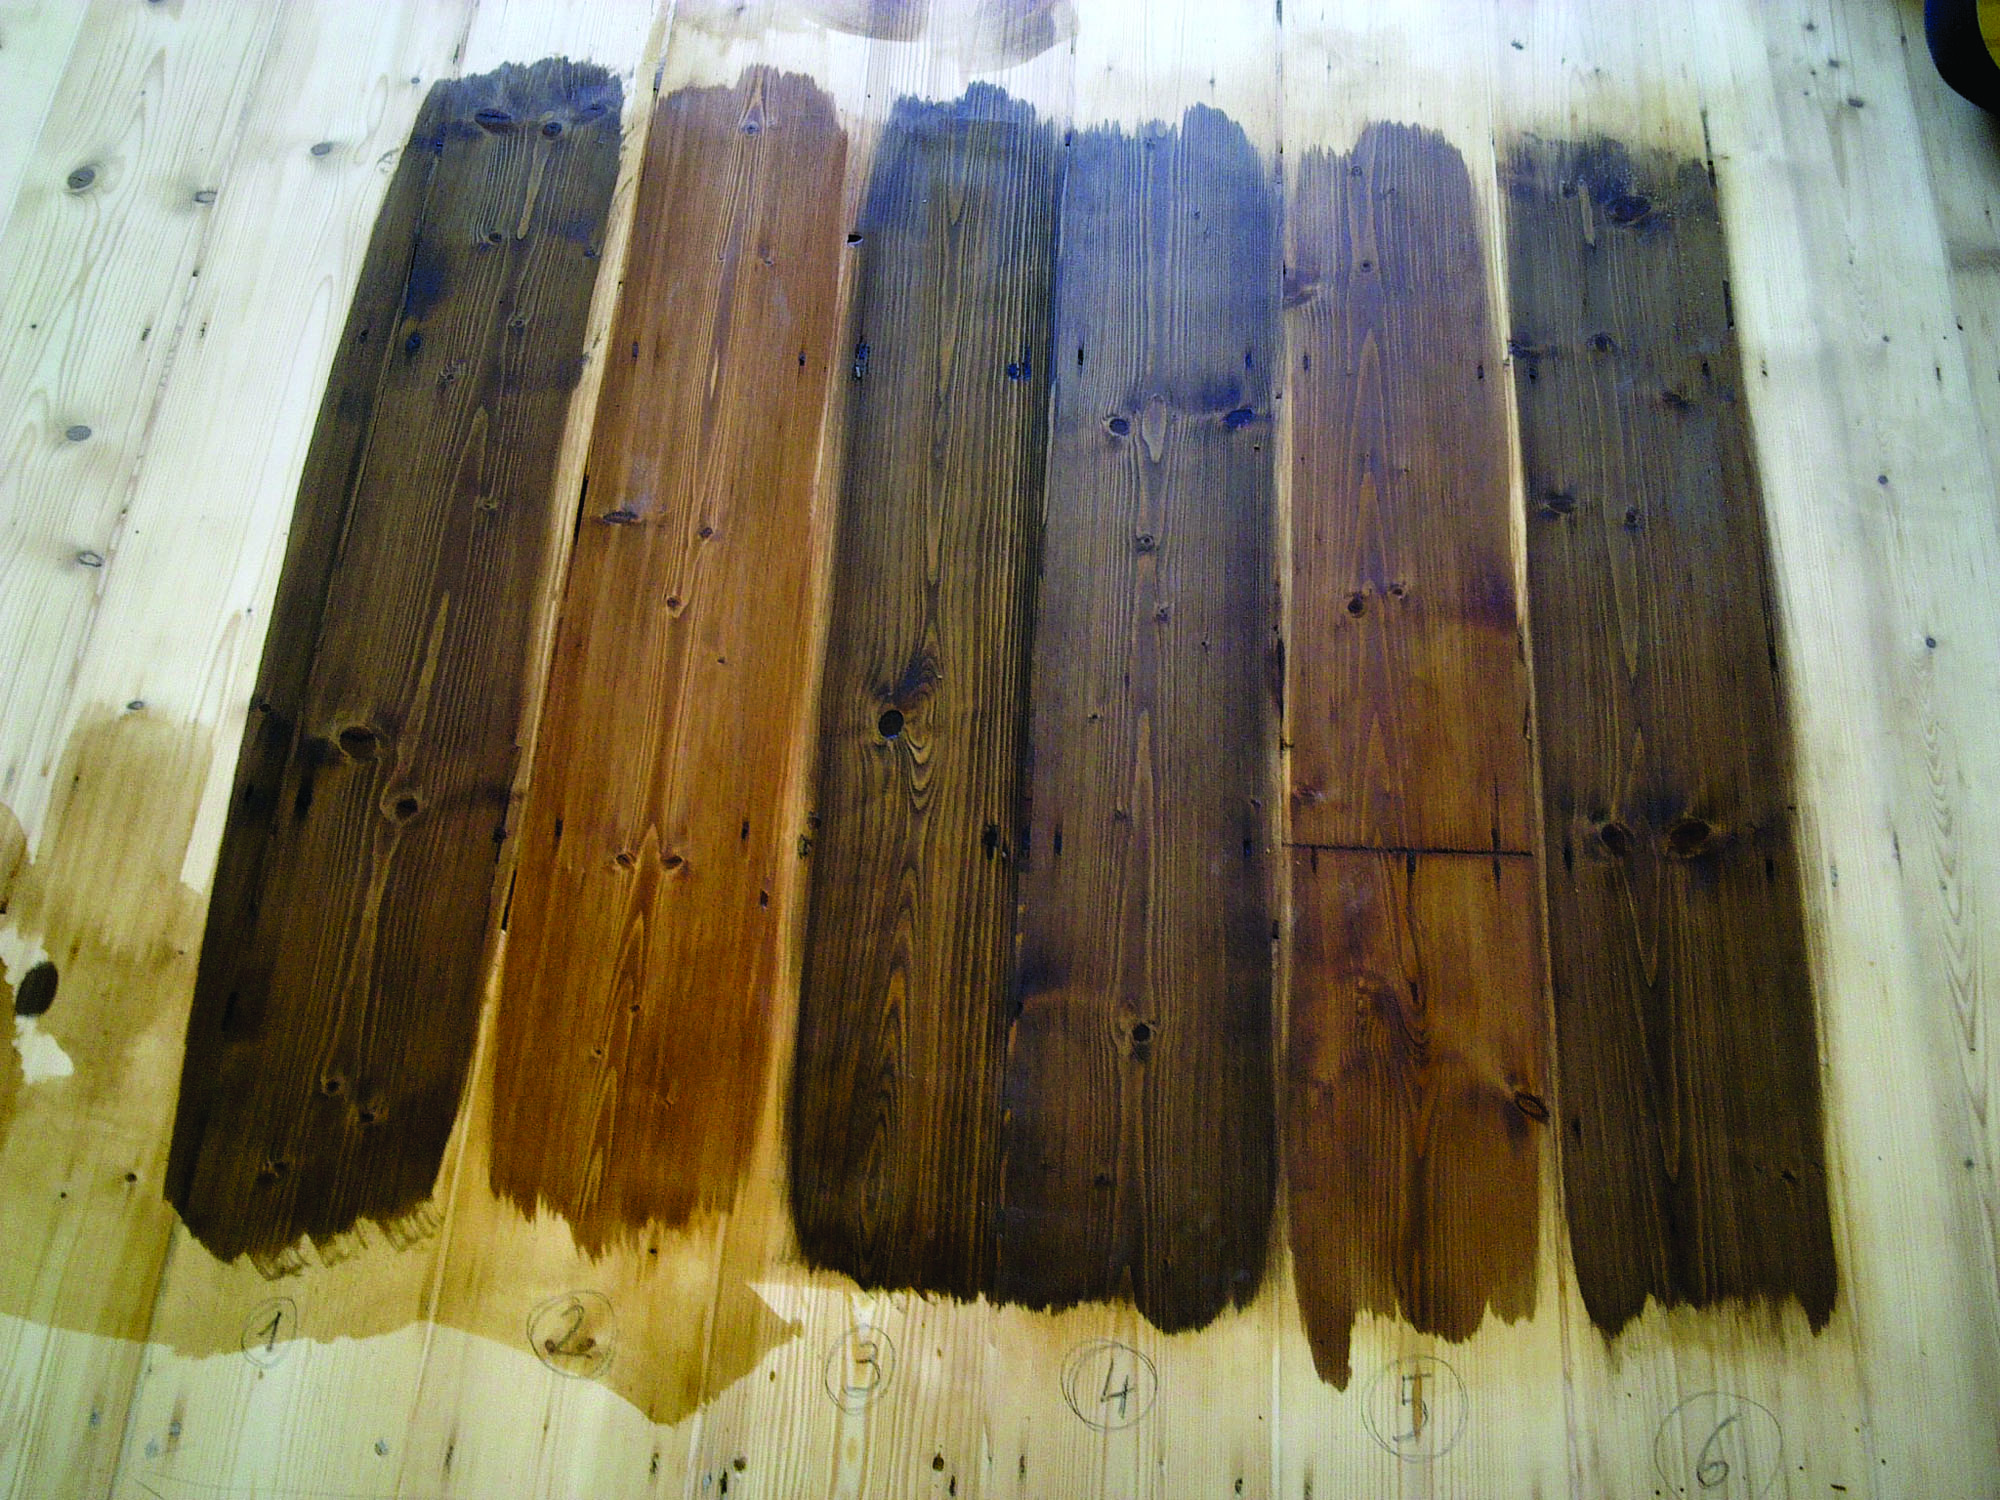 Before committing to a stain color, apply samples to boards of the same wood species and cut as the floor.